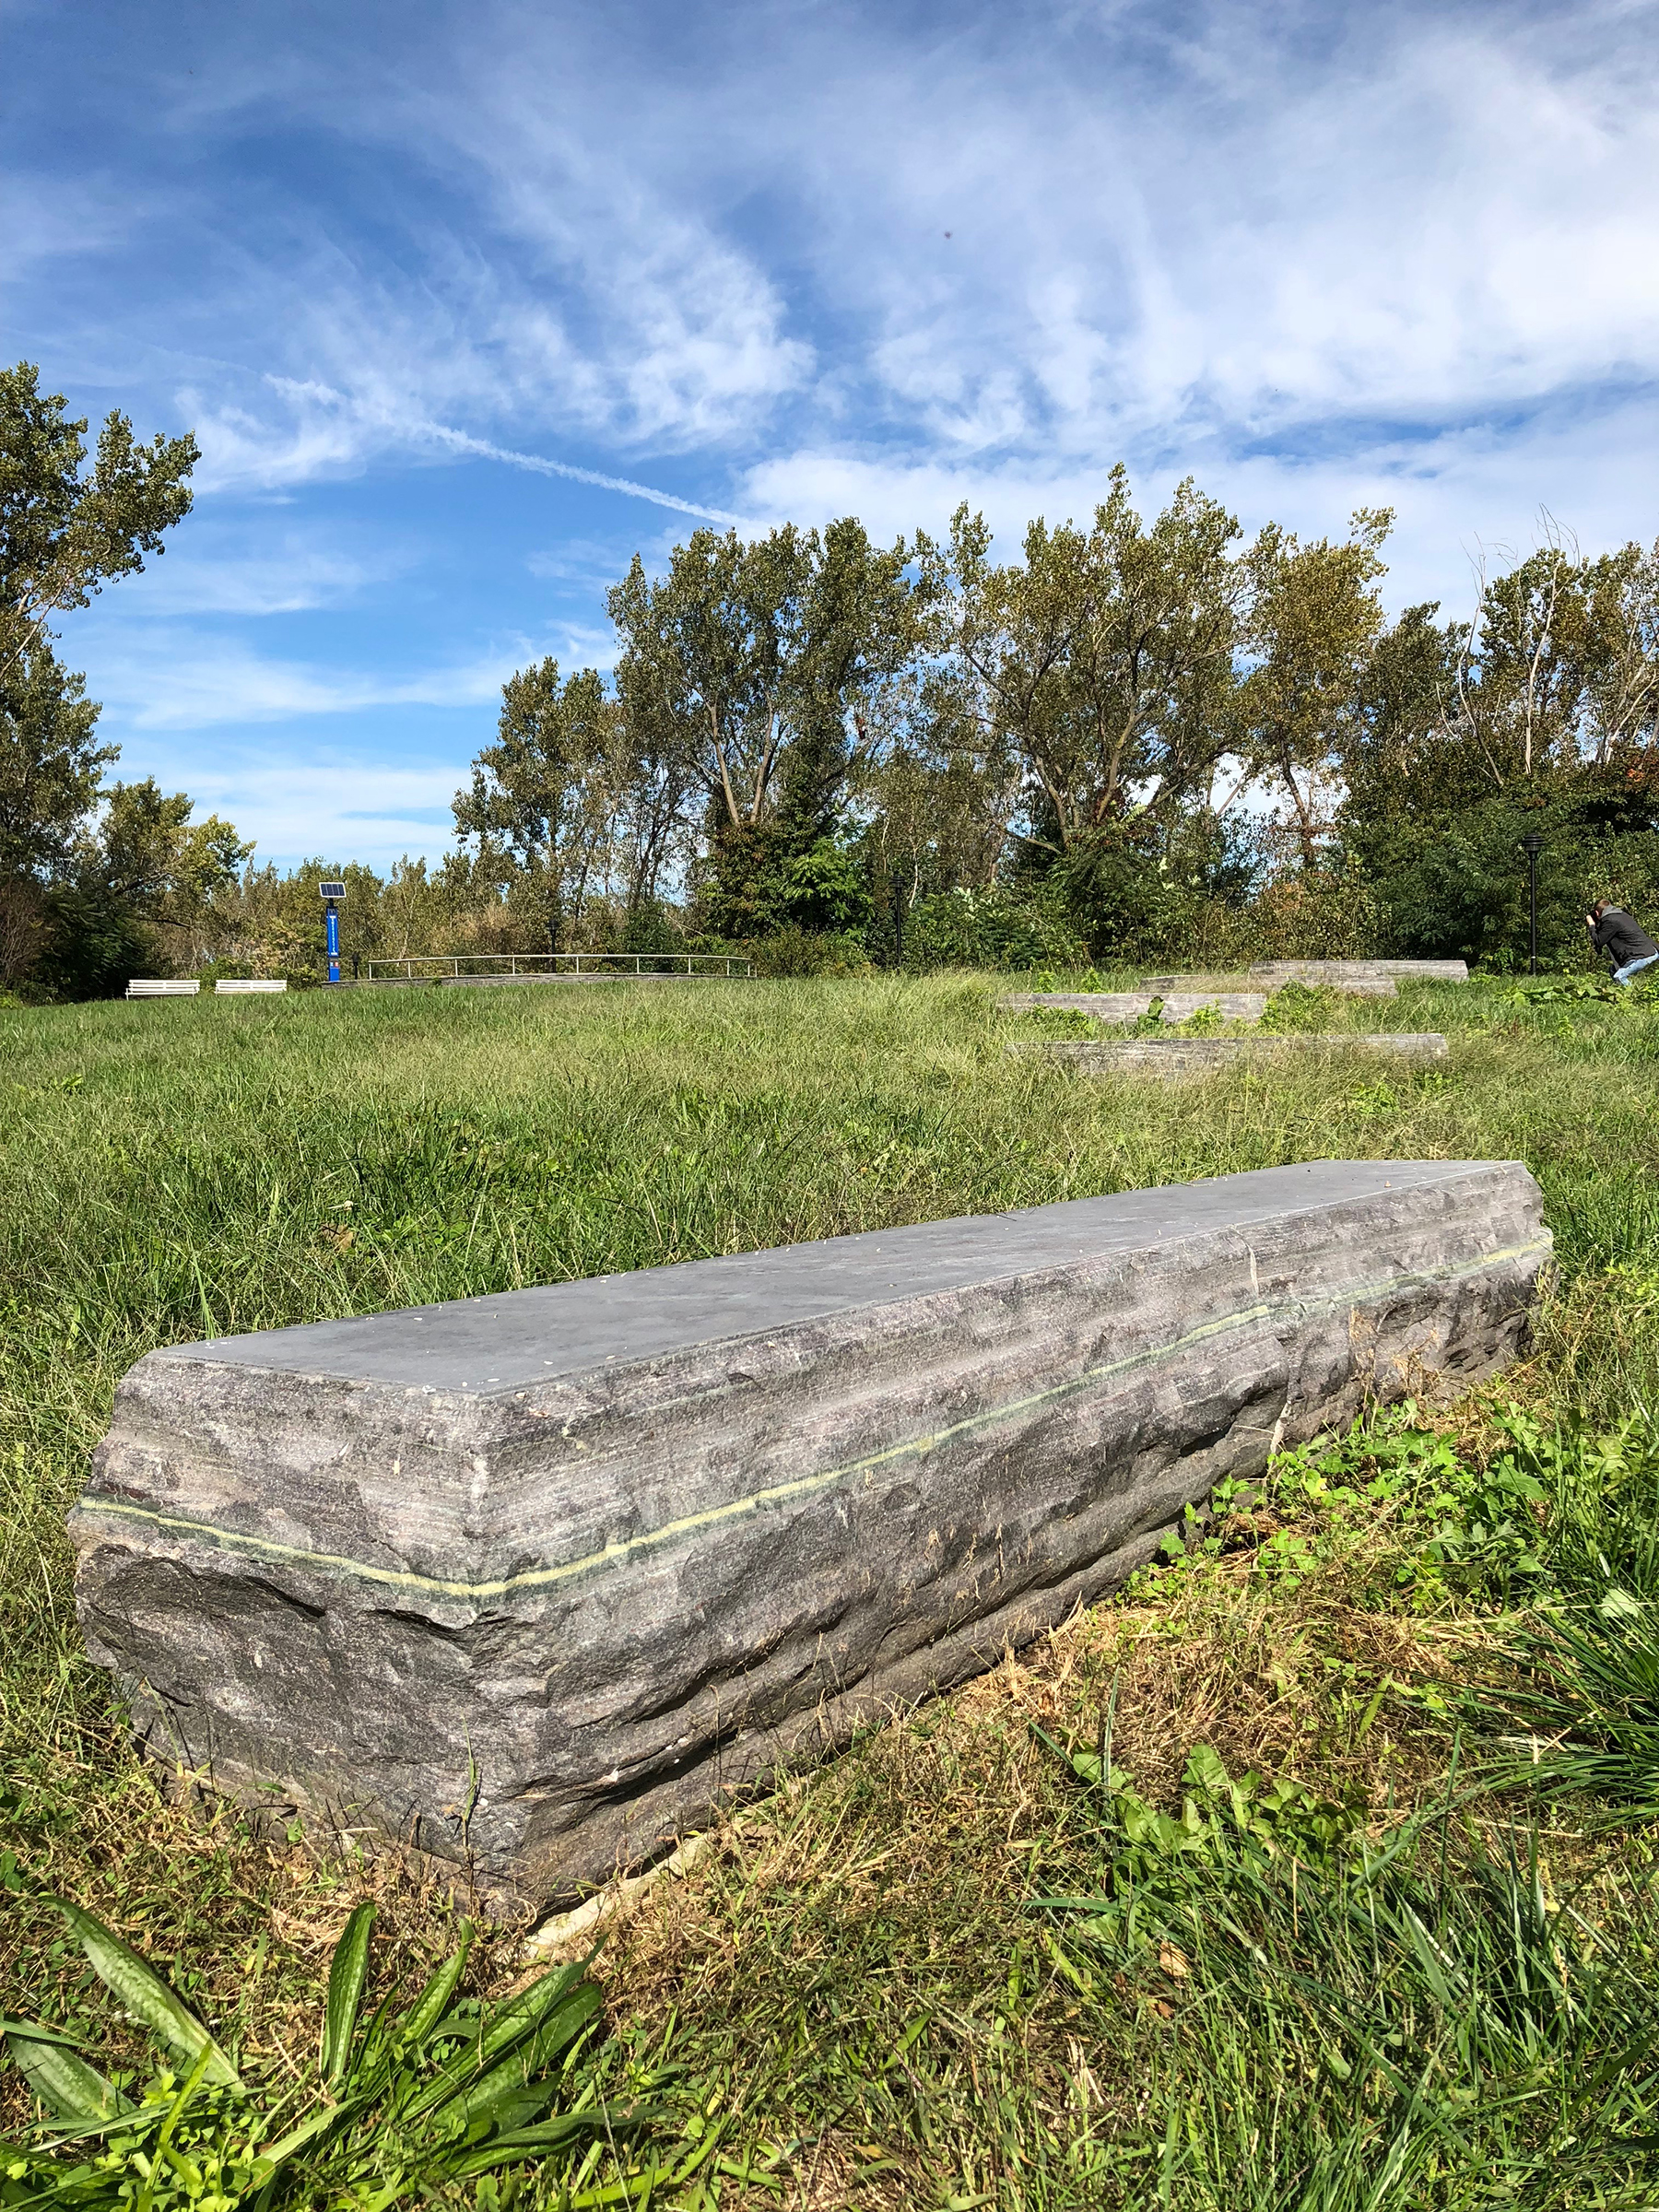 Large stone in field in park